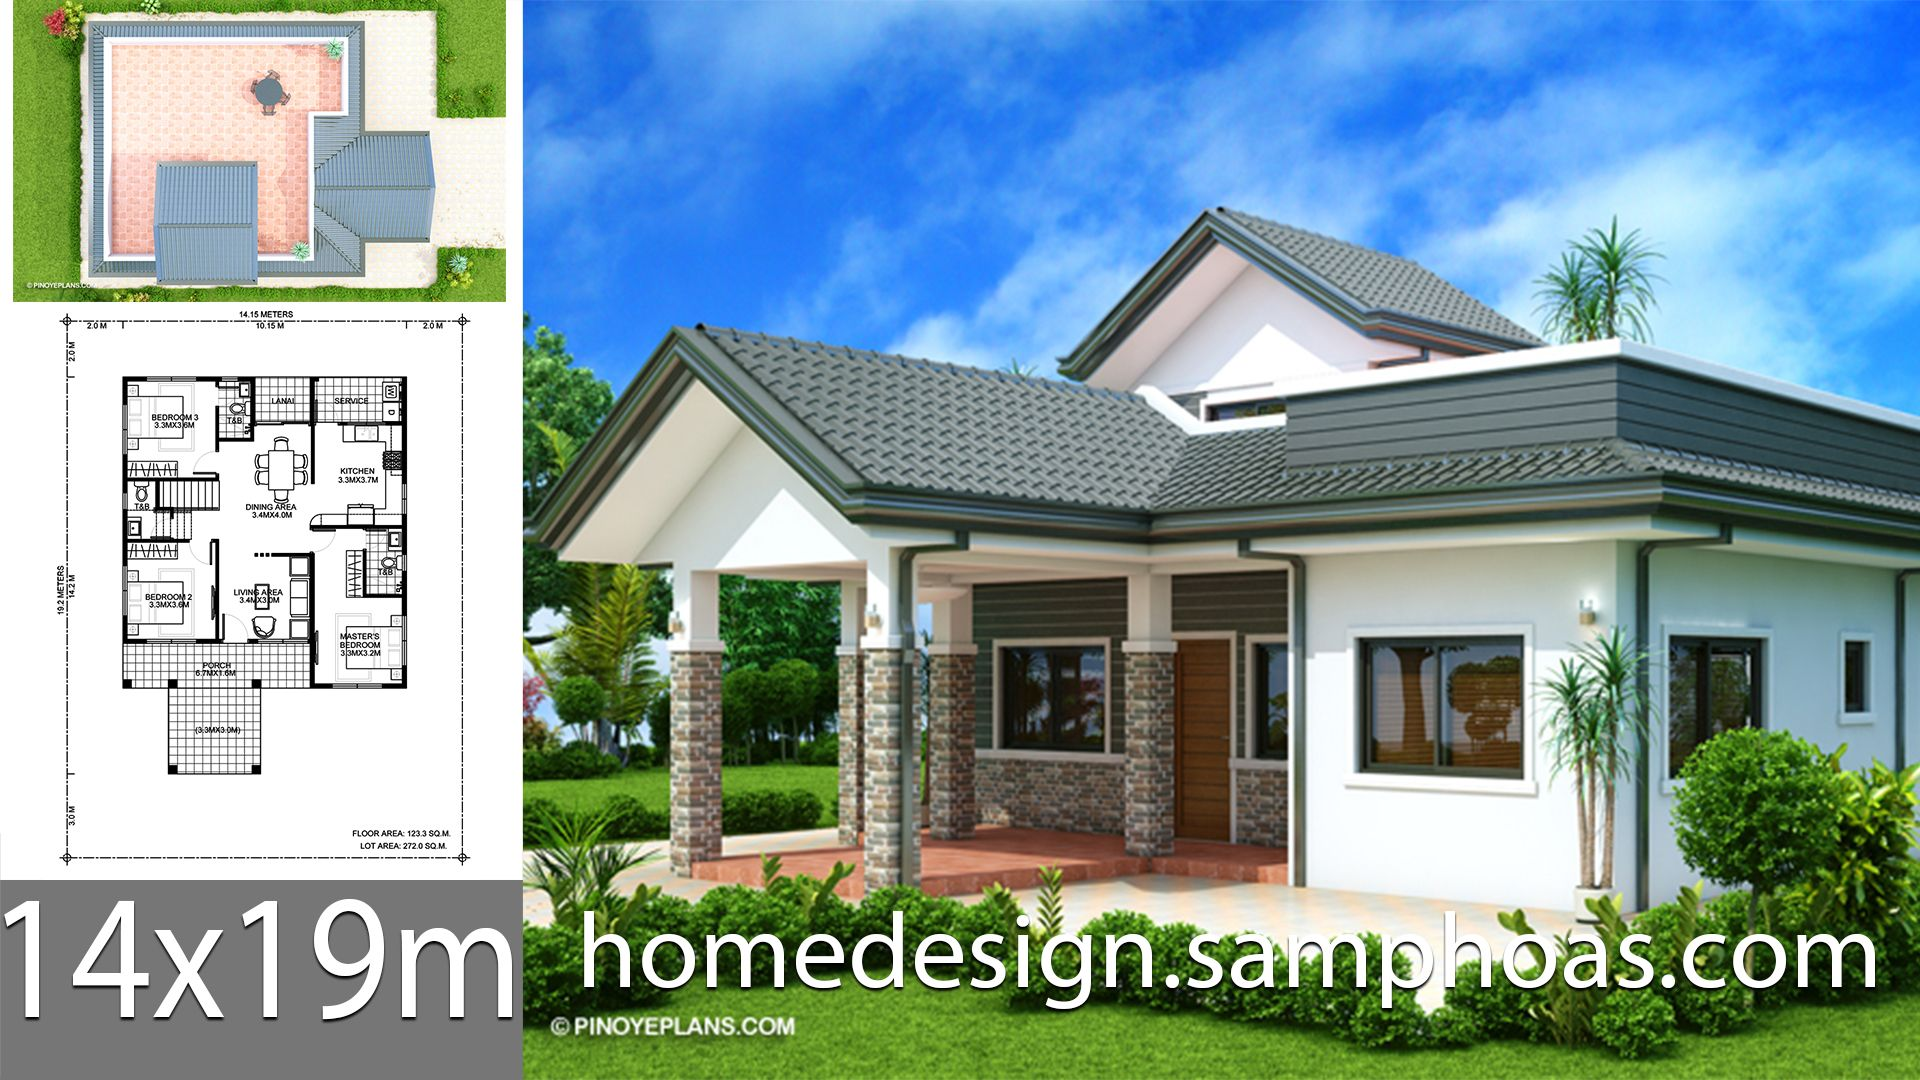 House Design Plans 14x19m With 3 Bedroom In 2020 Home Design Plans Small House Design Plans House Design